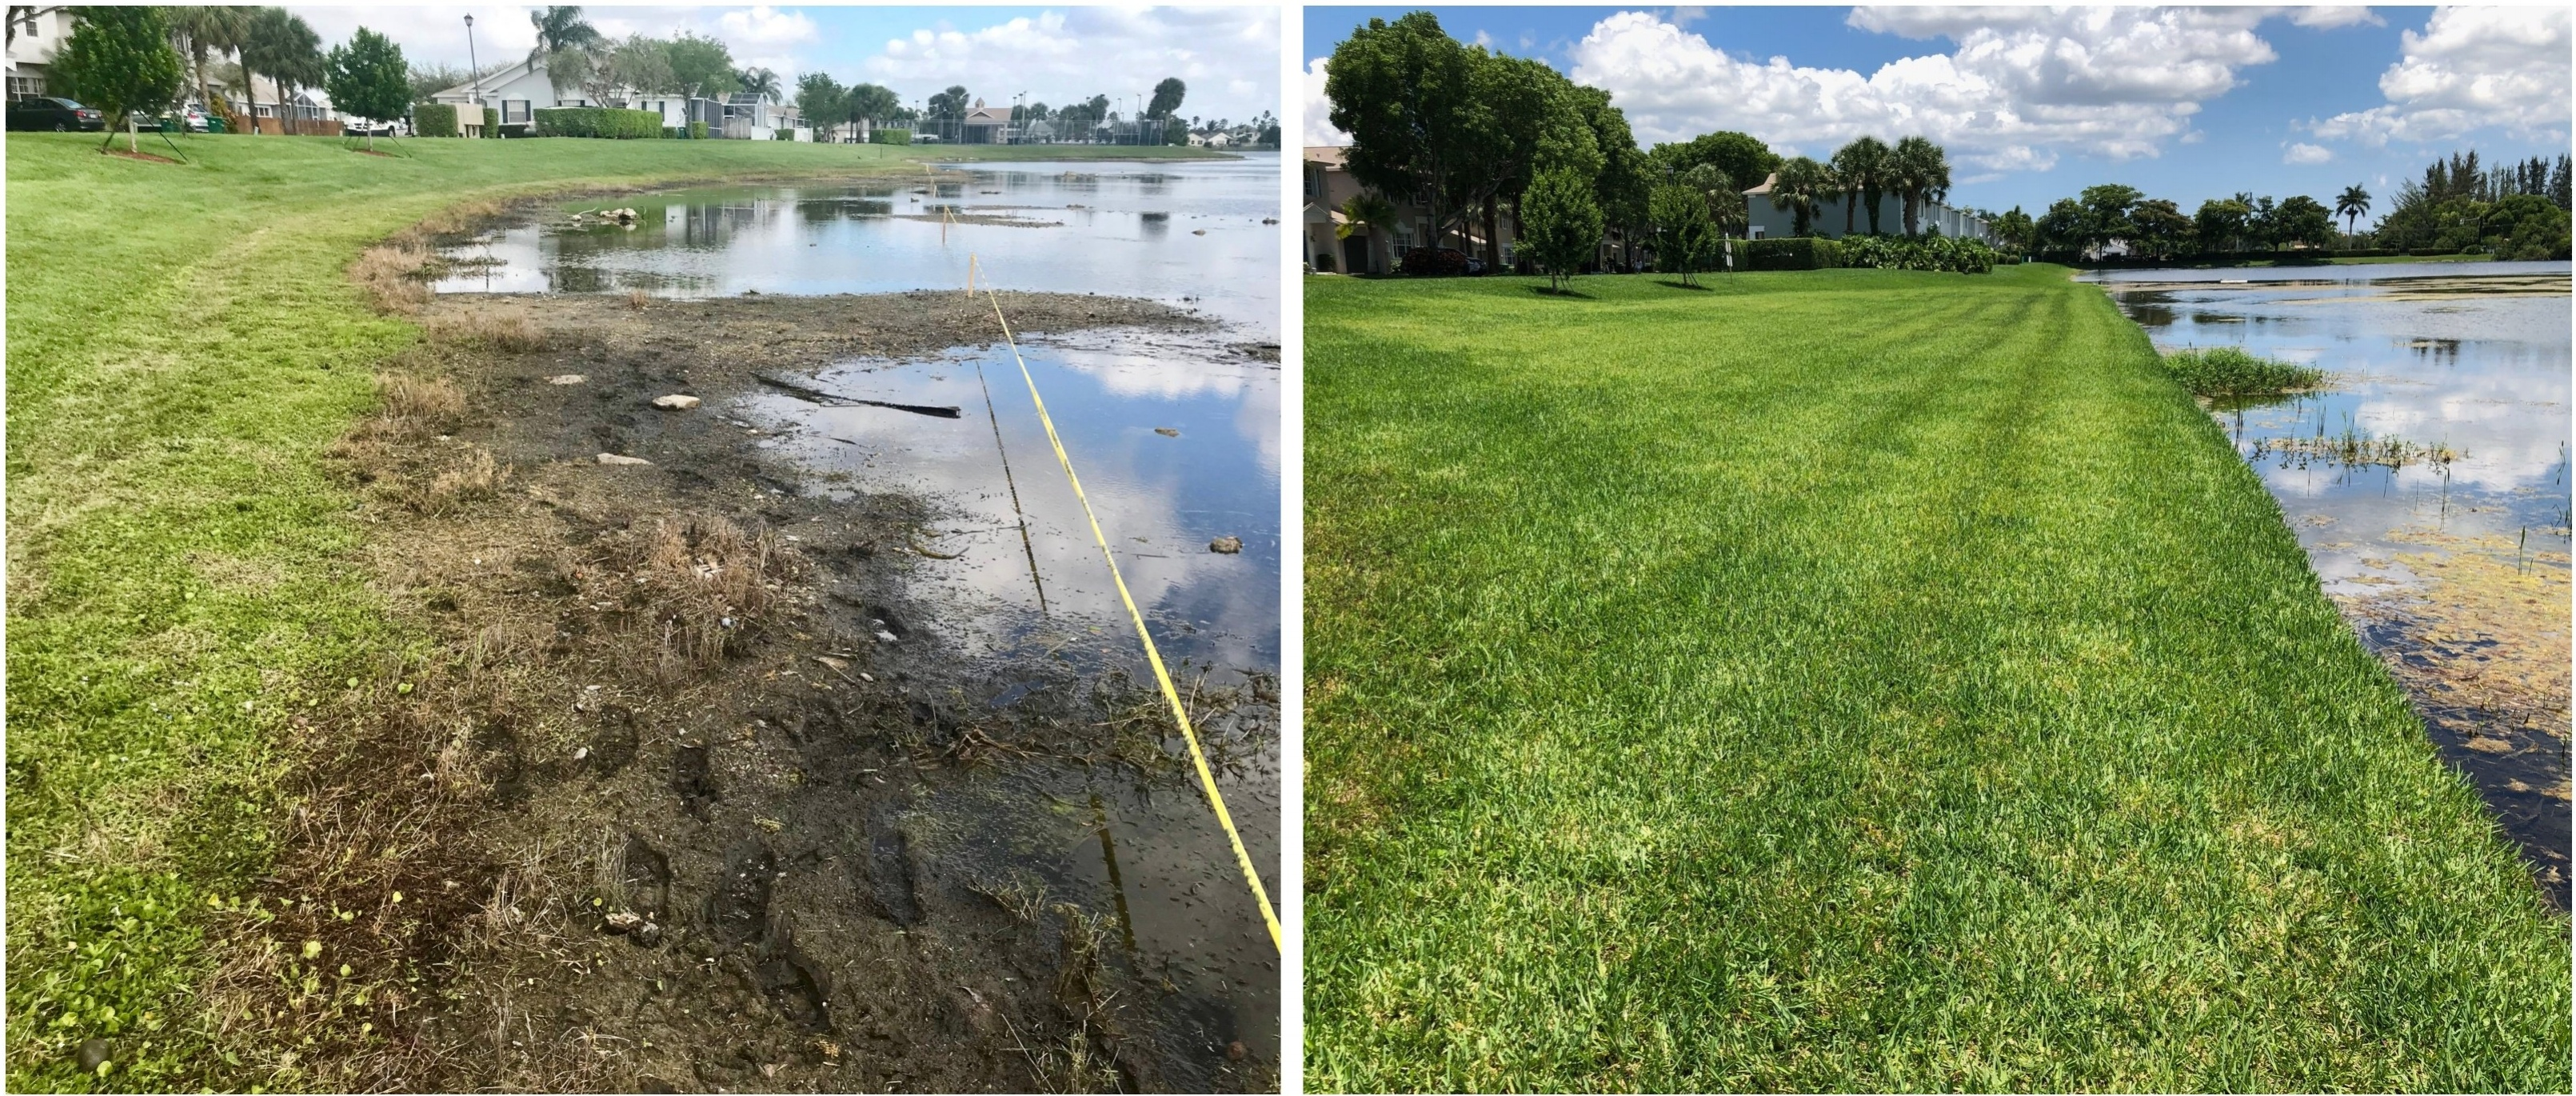 Restoring Shoreline with SOX Mesh Barrier Technology, Before and After